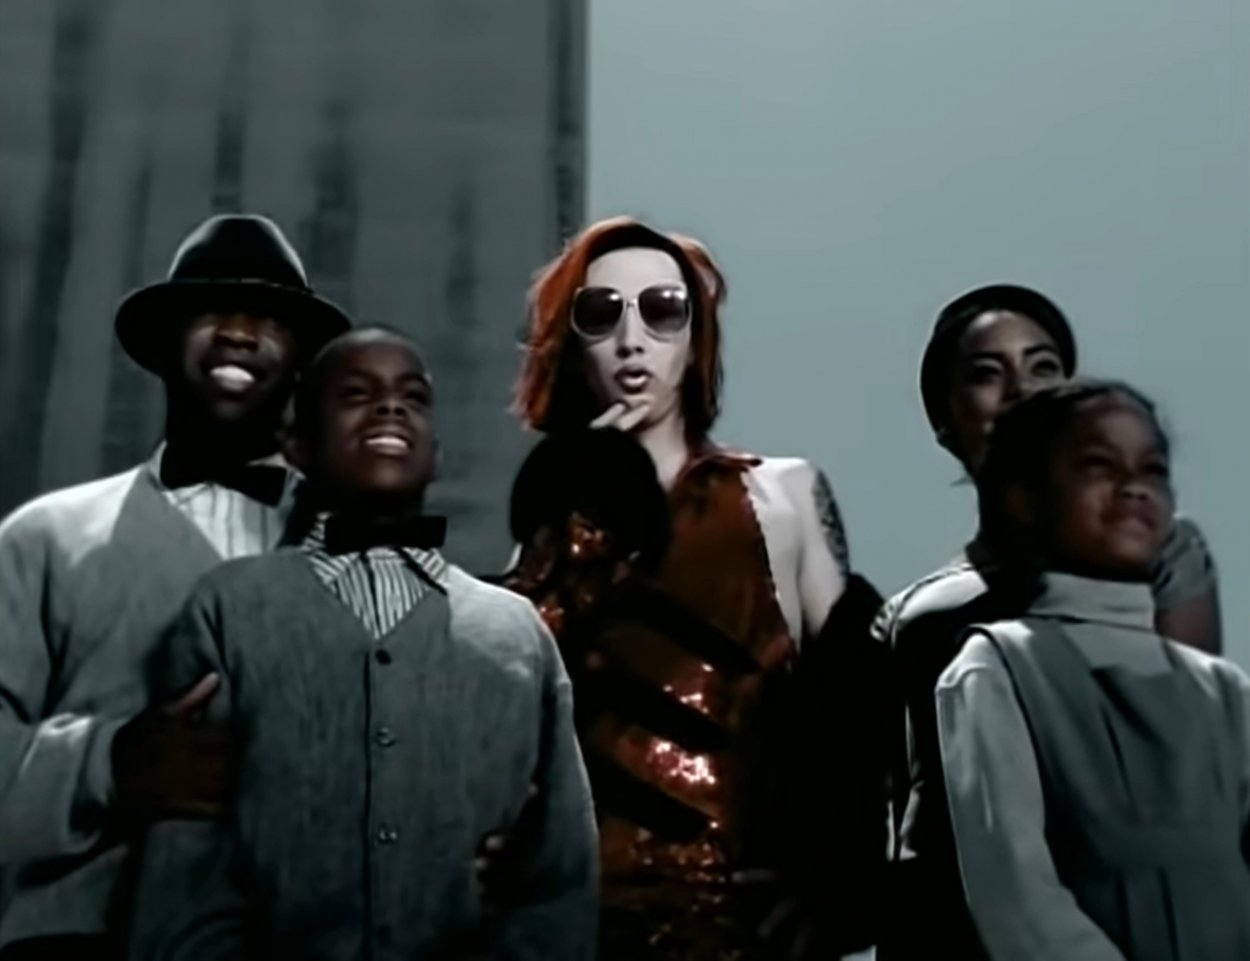 """Marilyn Manson as an alien rock star posing for the camera, surrounded by people wearing grey clothes in """"The Dope Show"""" music video"""